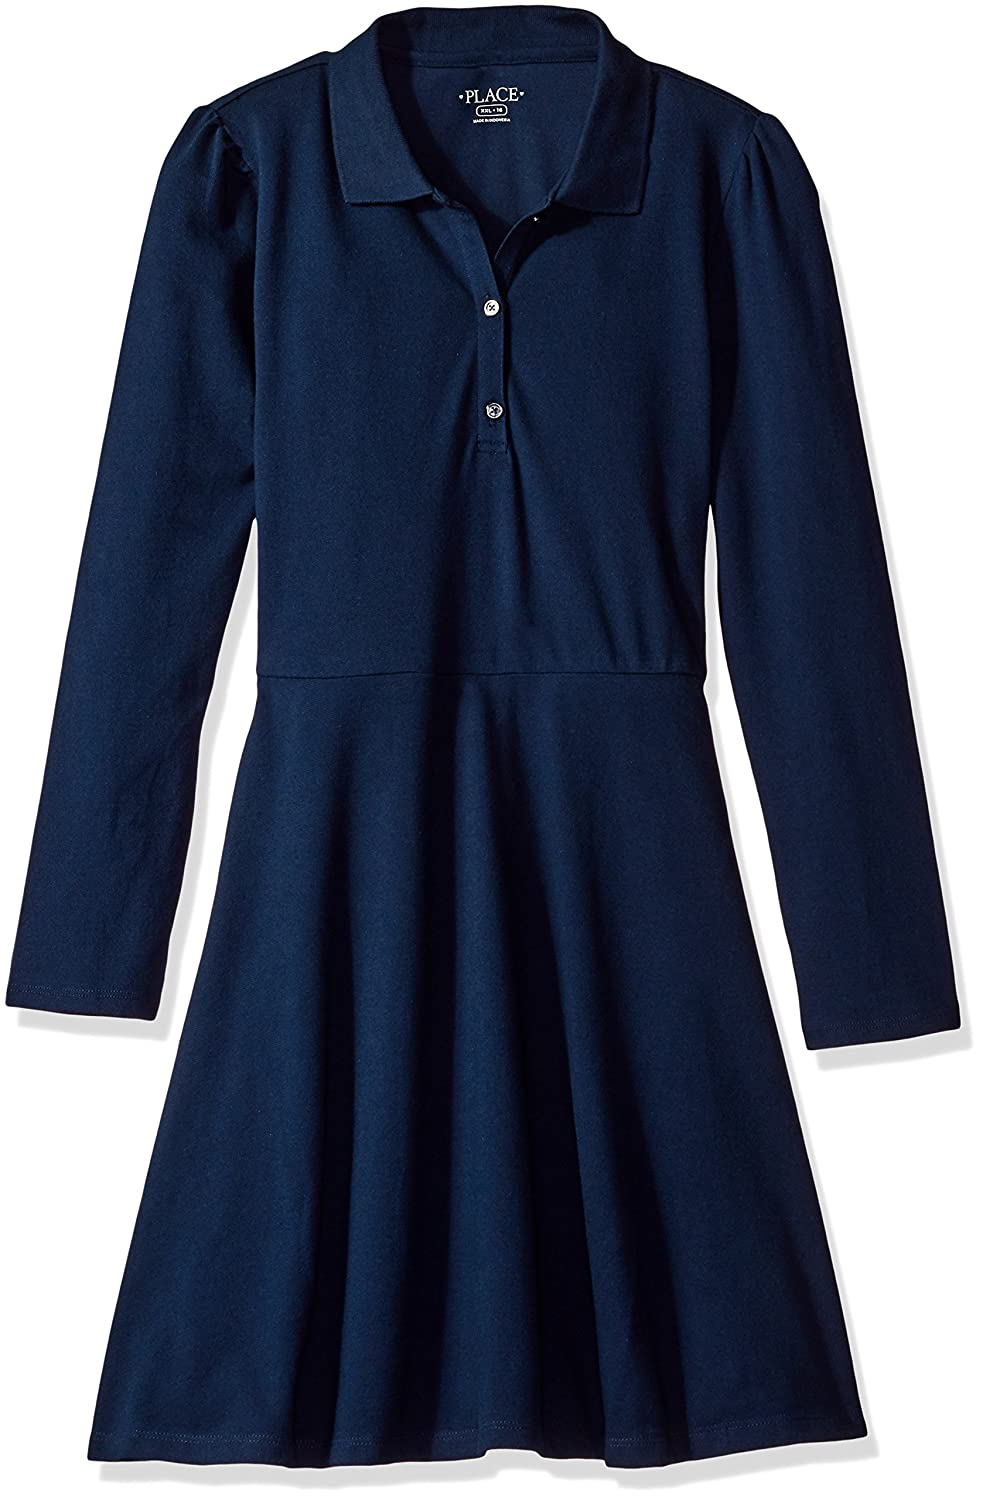 The Children's Place Girls' Uniform Long Sleeve Polo Dress